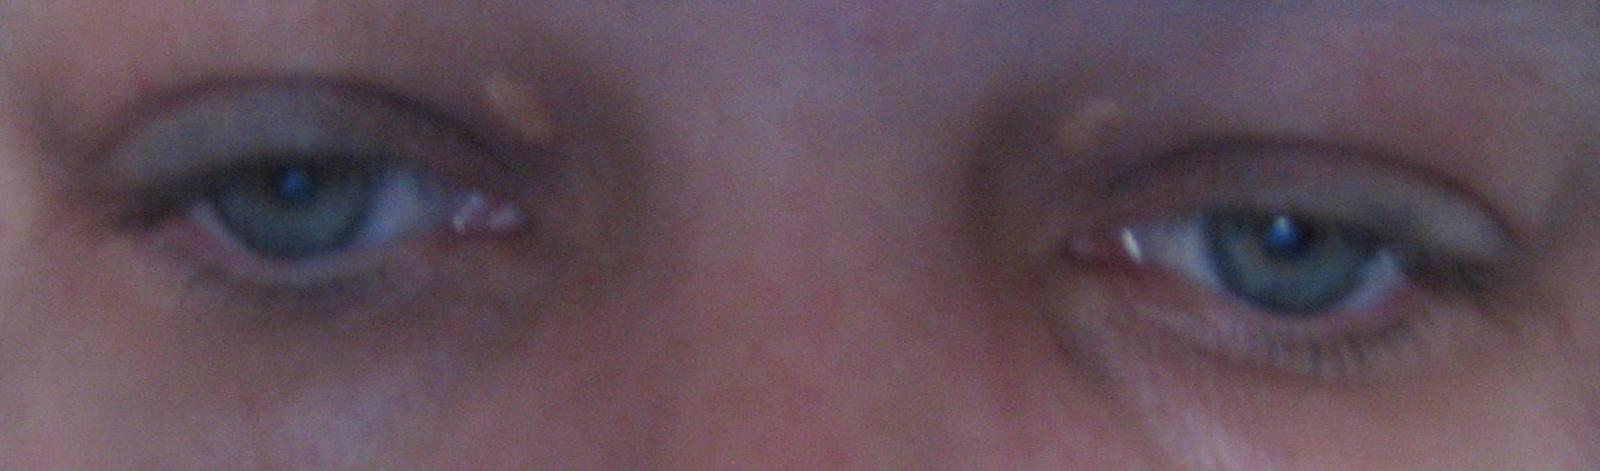 White spots above eye lids?? Anyone Know what causes this